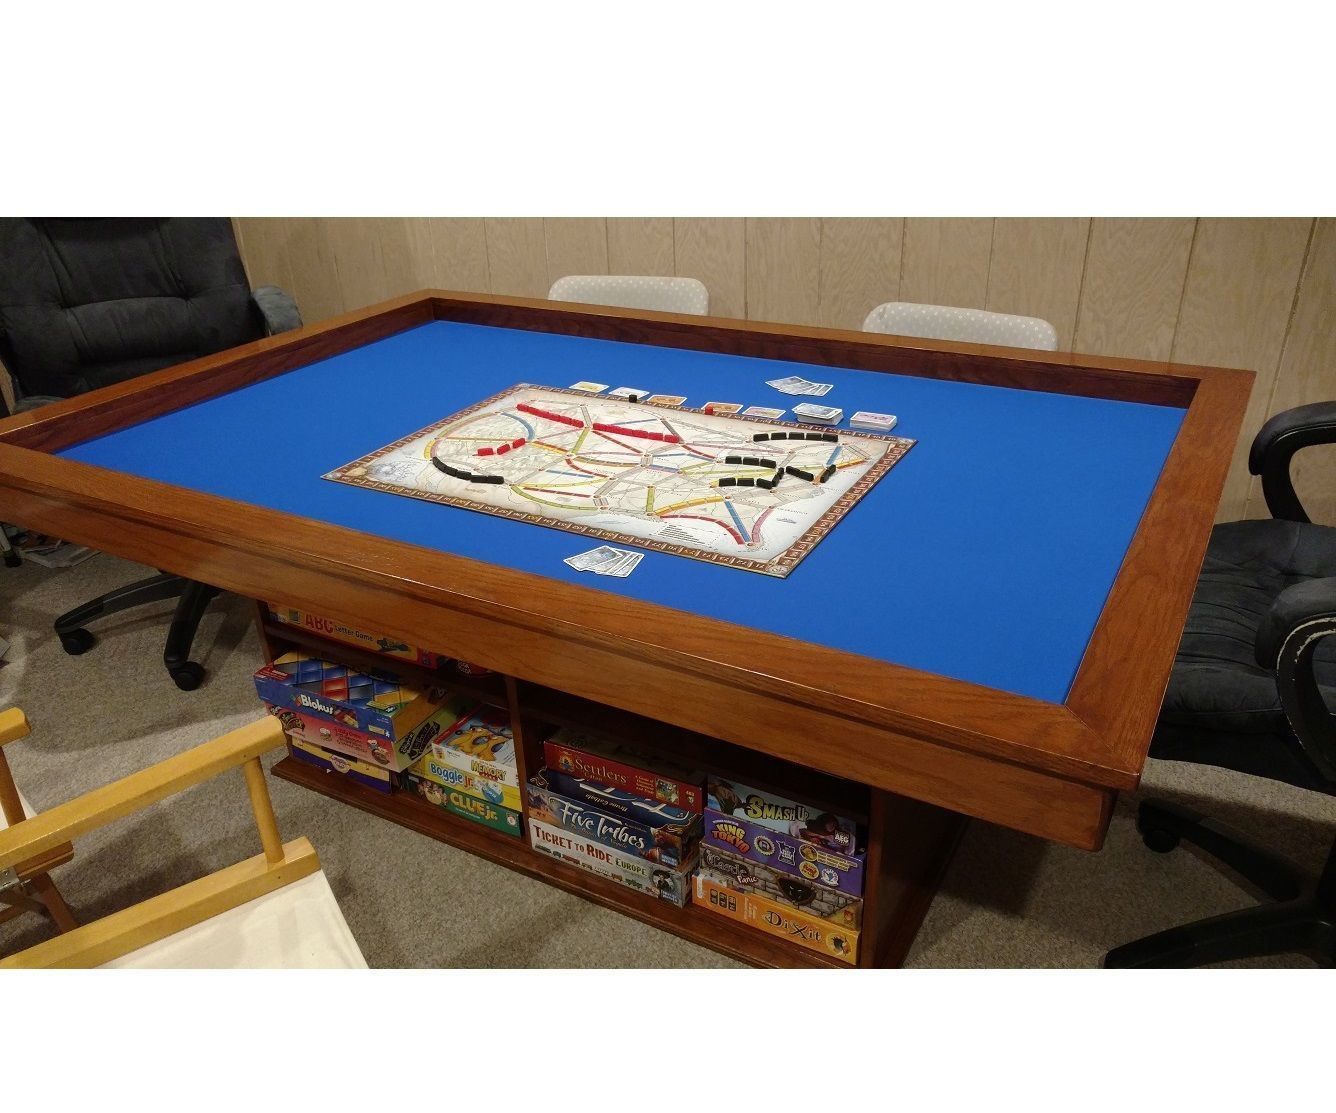 Make Gaming Table With Built-in Game Storage